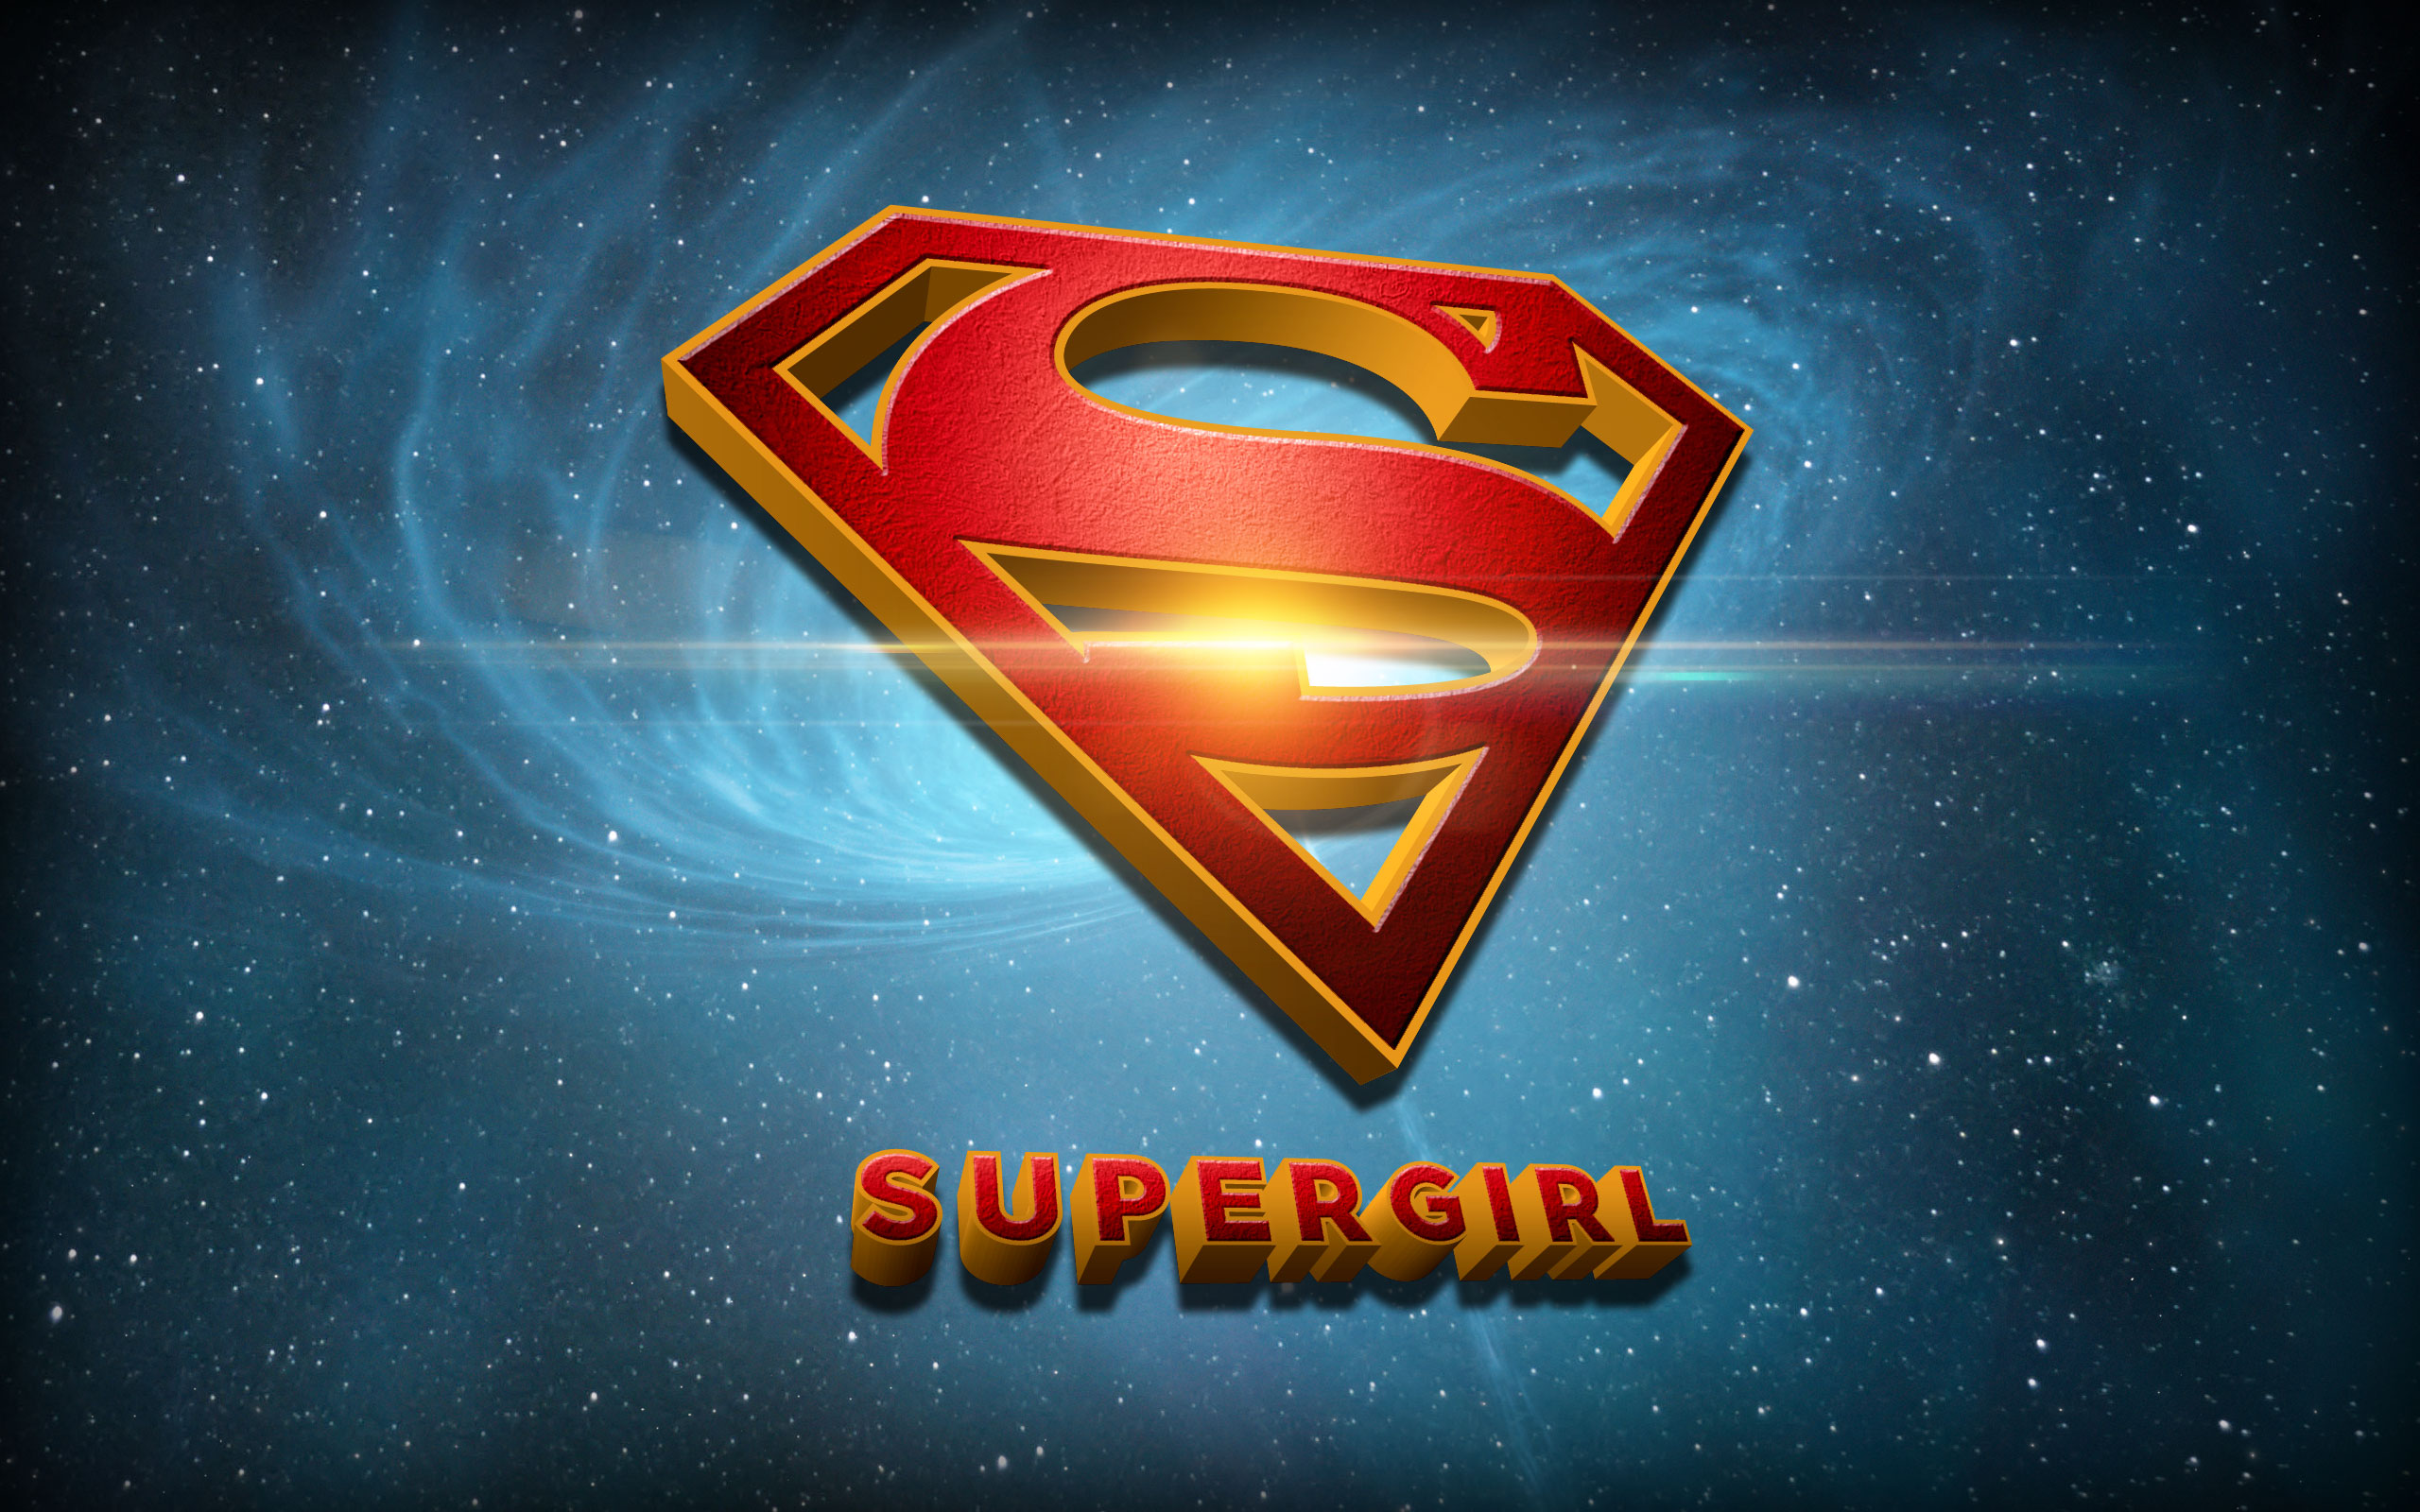 Supergirl HD Wallpapers